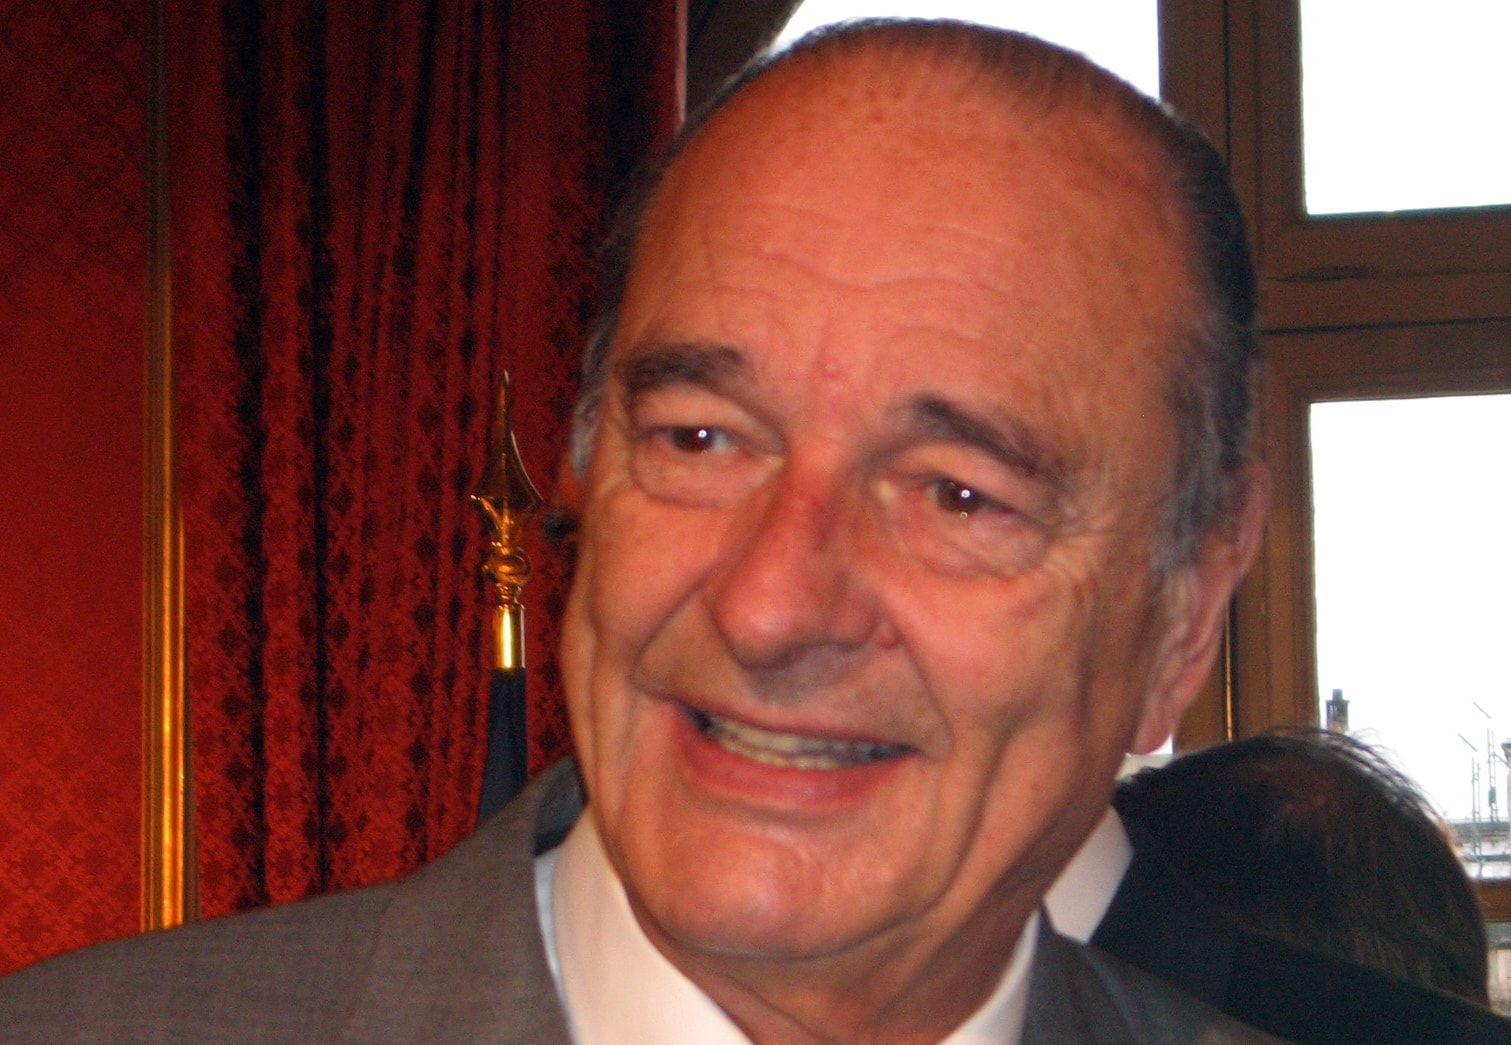 presidents 5 v republique jacques chirac